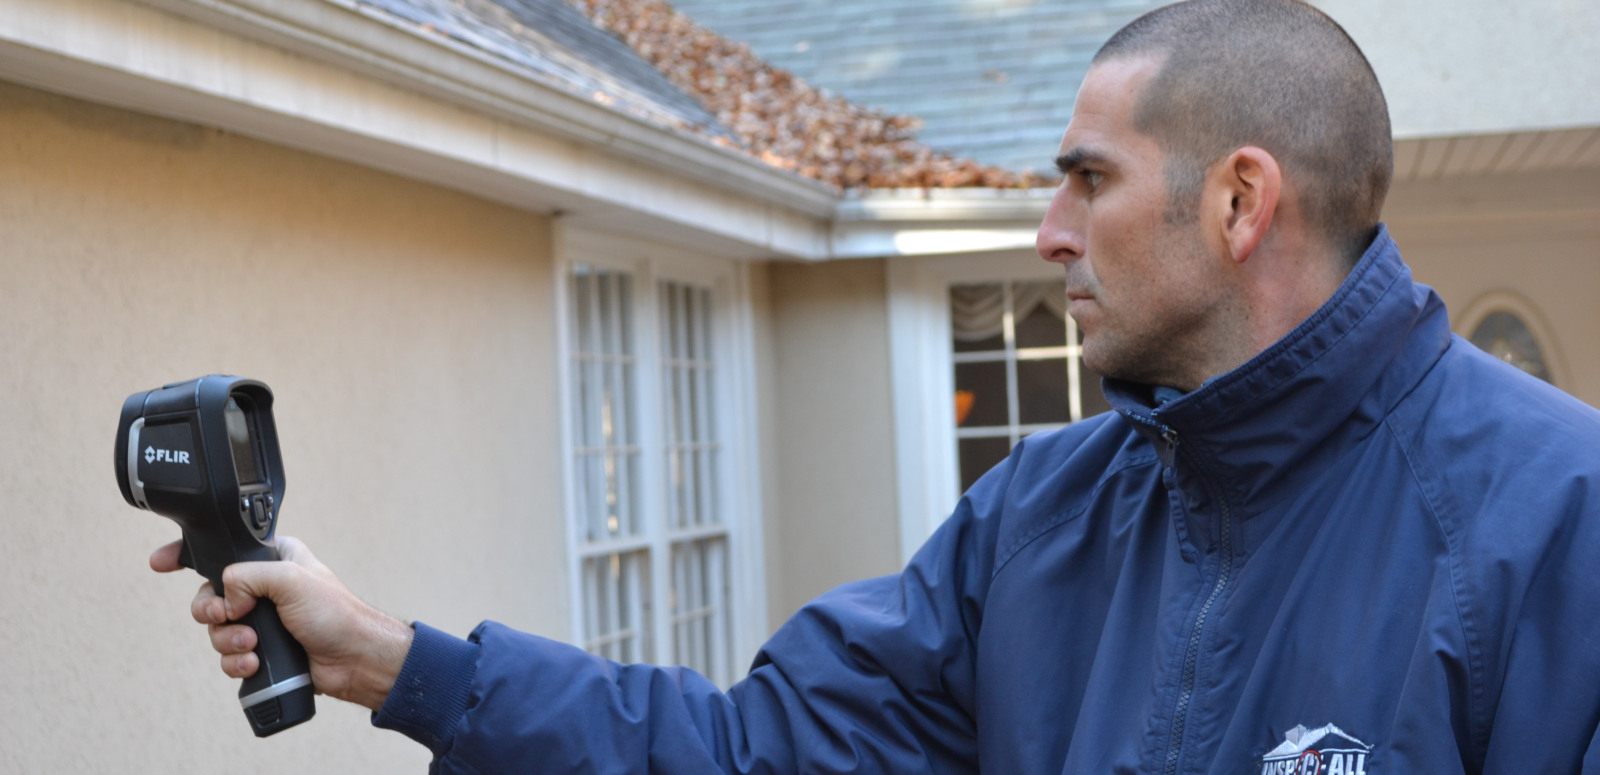 Give us a call, our stucco certified inspectors are here to help!